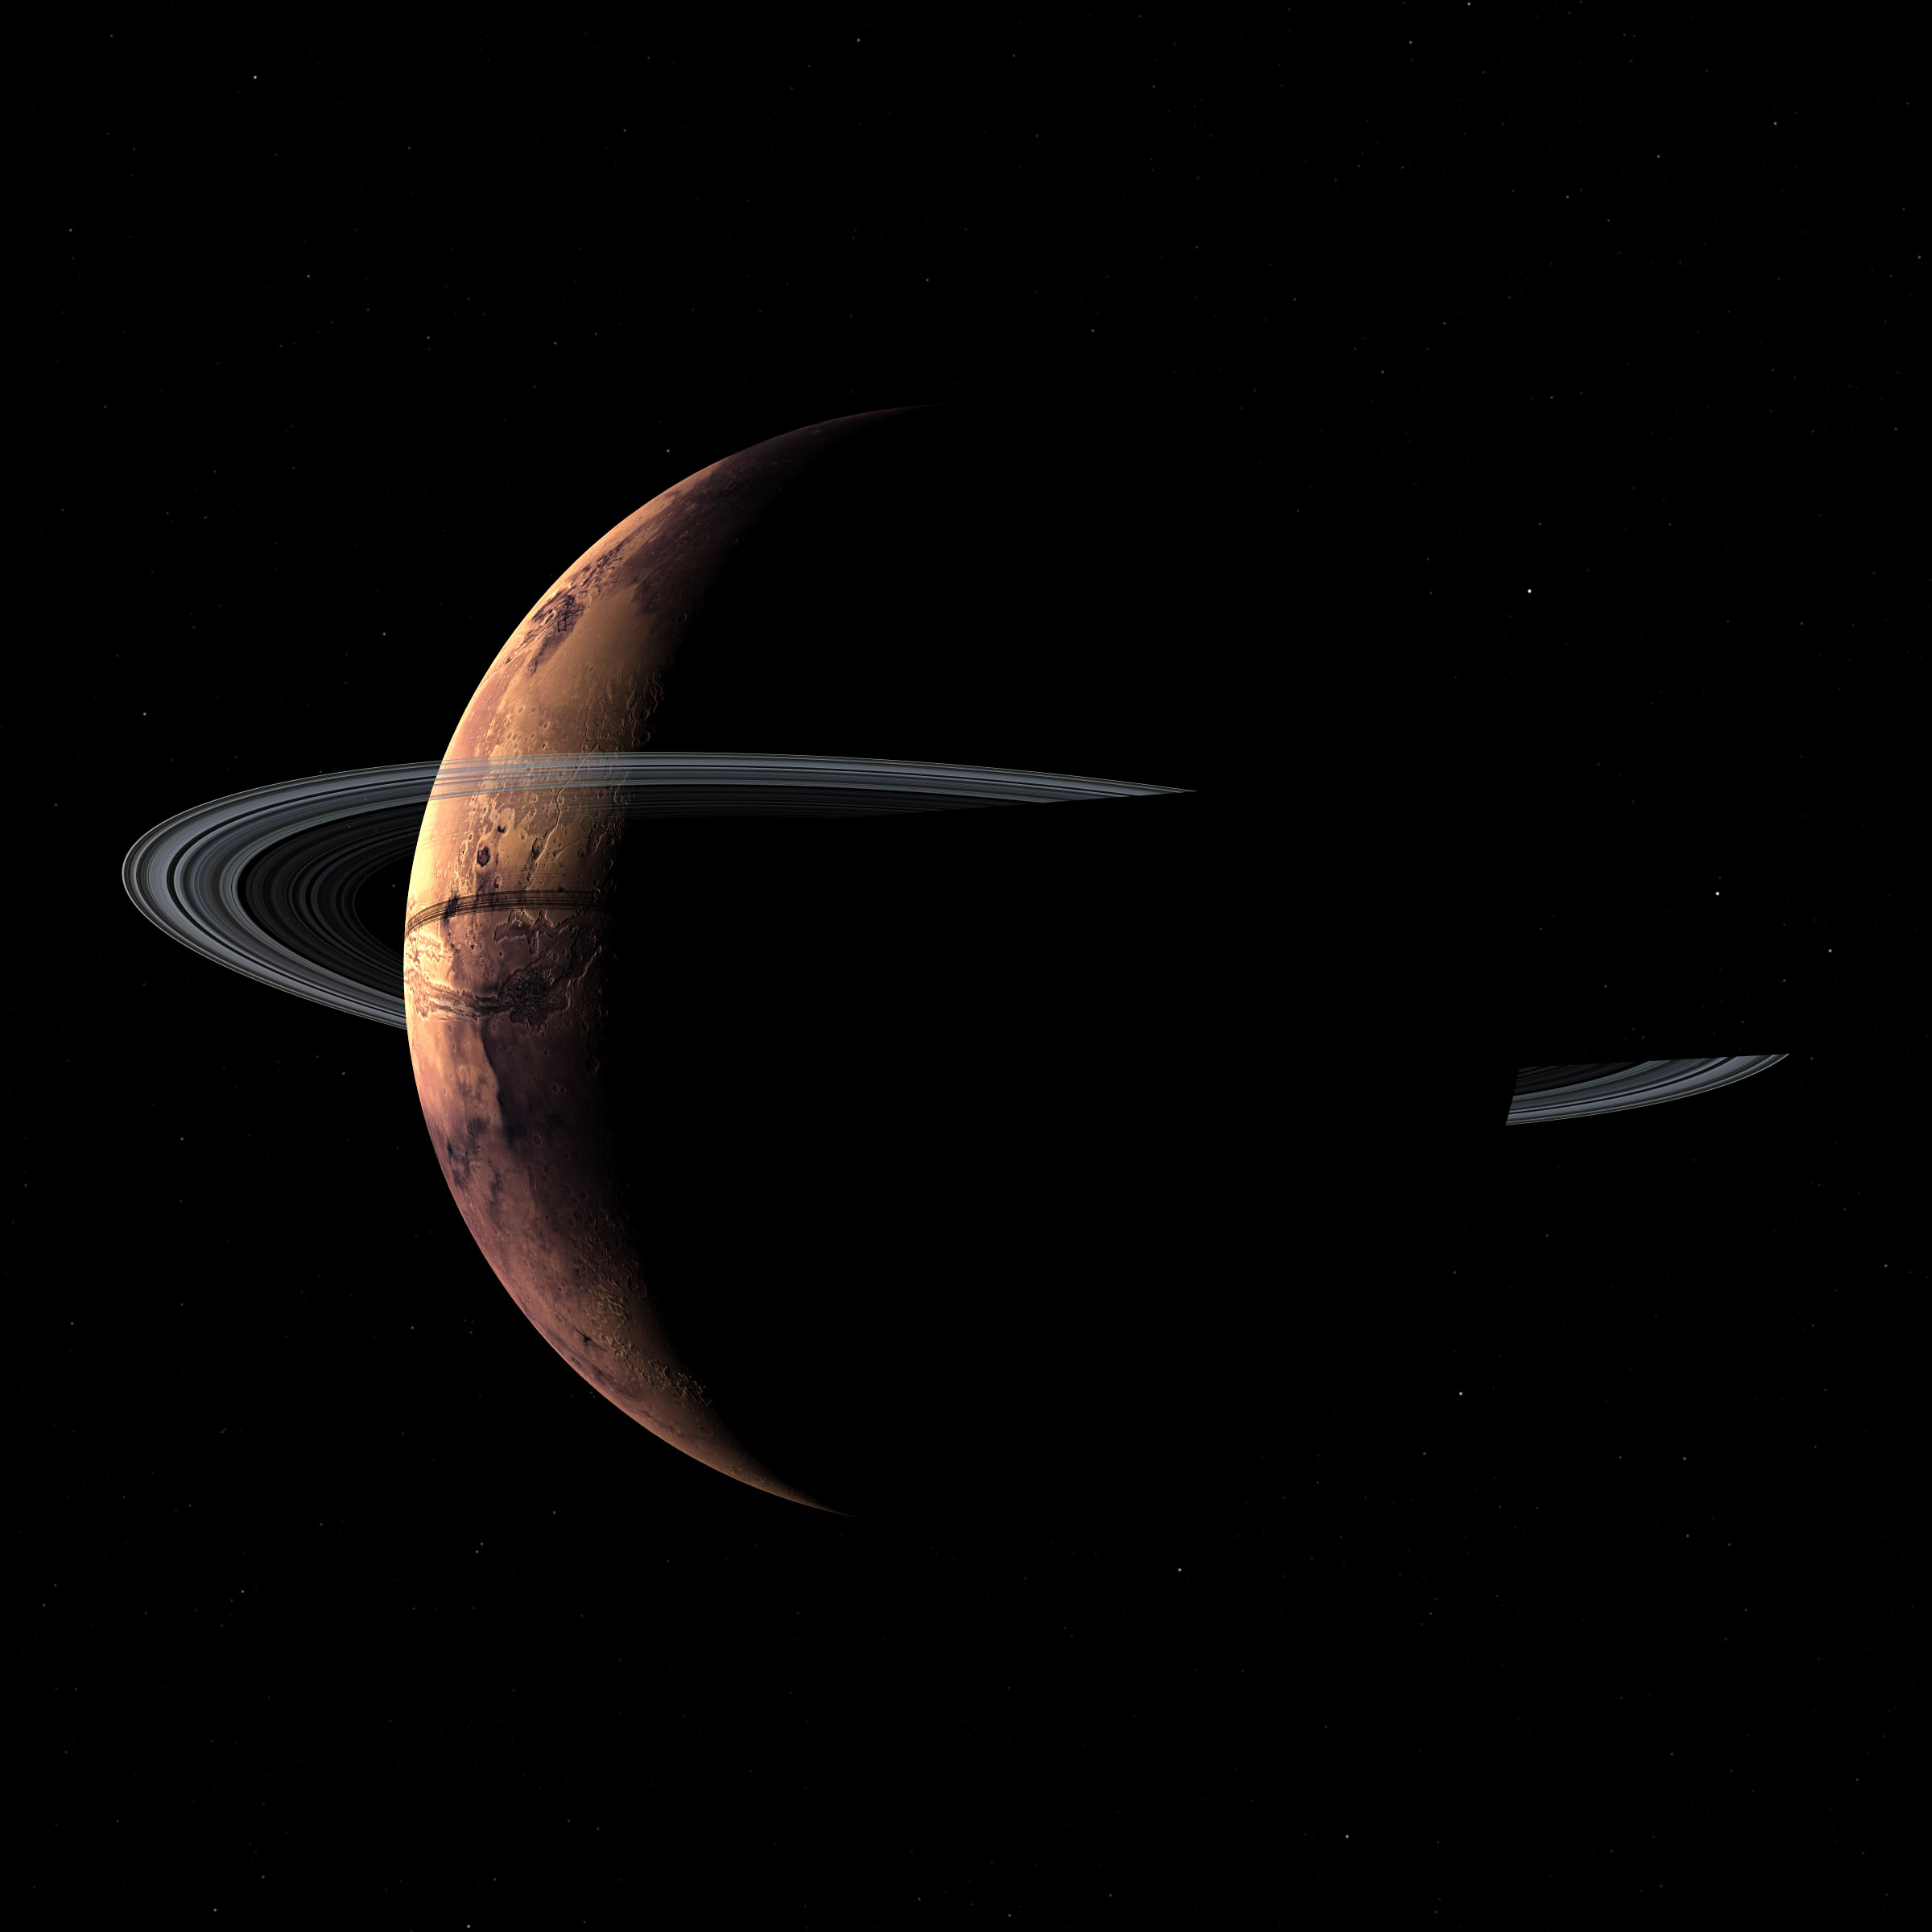 mars planets of the rings - photo #45